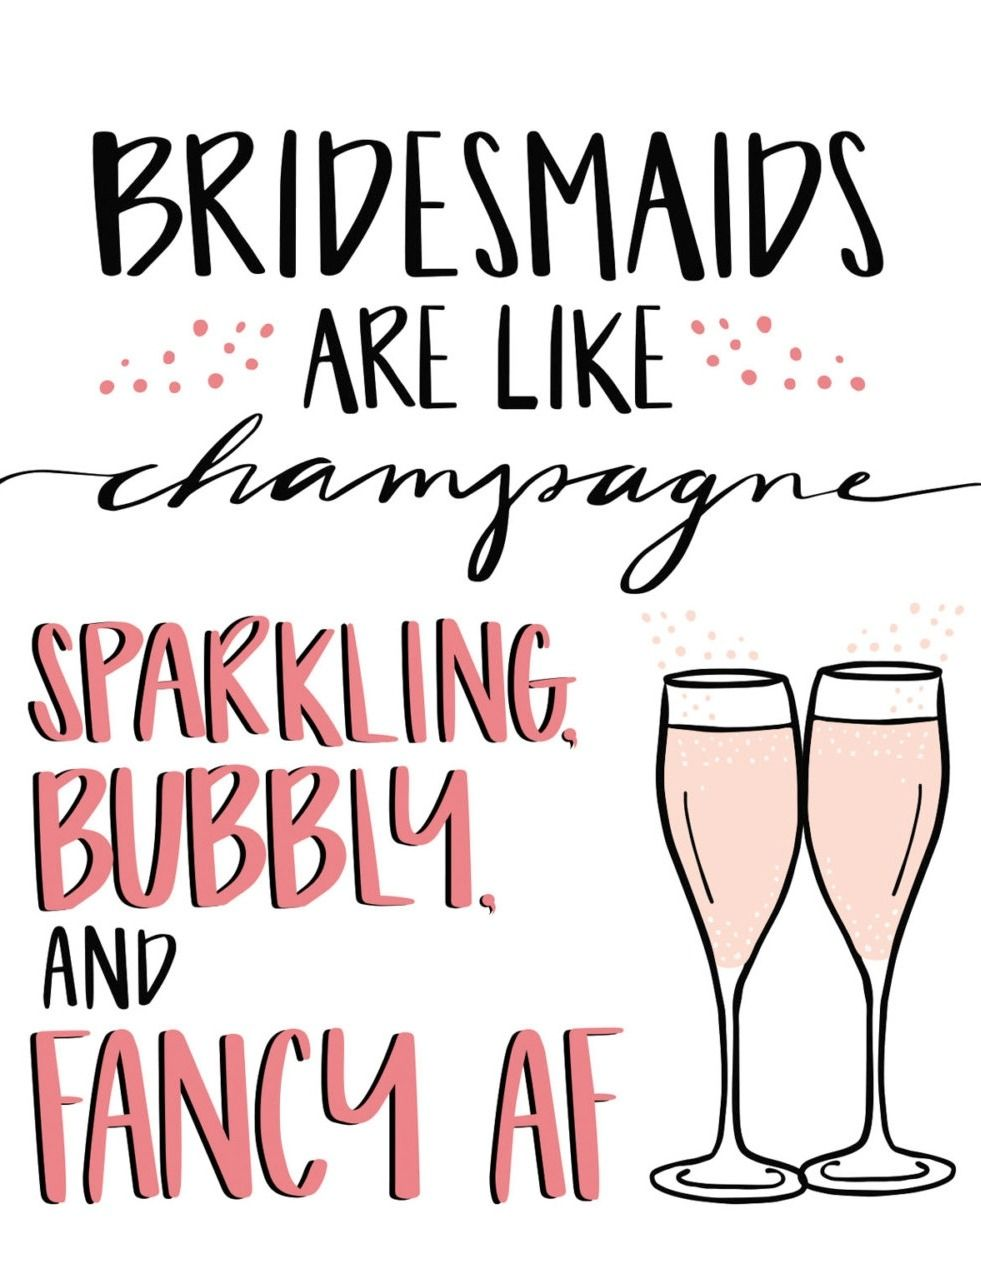 Bridesmaids are like champagne; sparkling, bubbly and